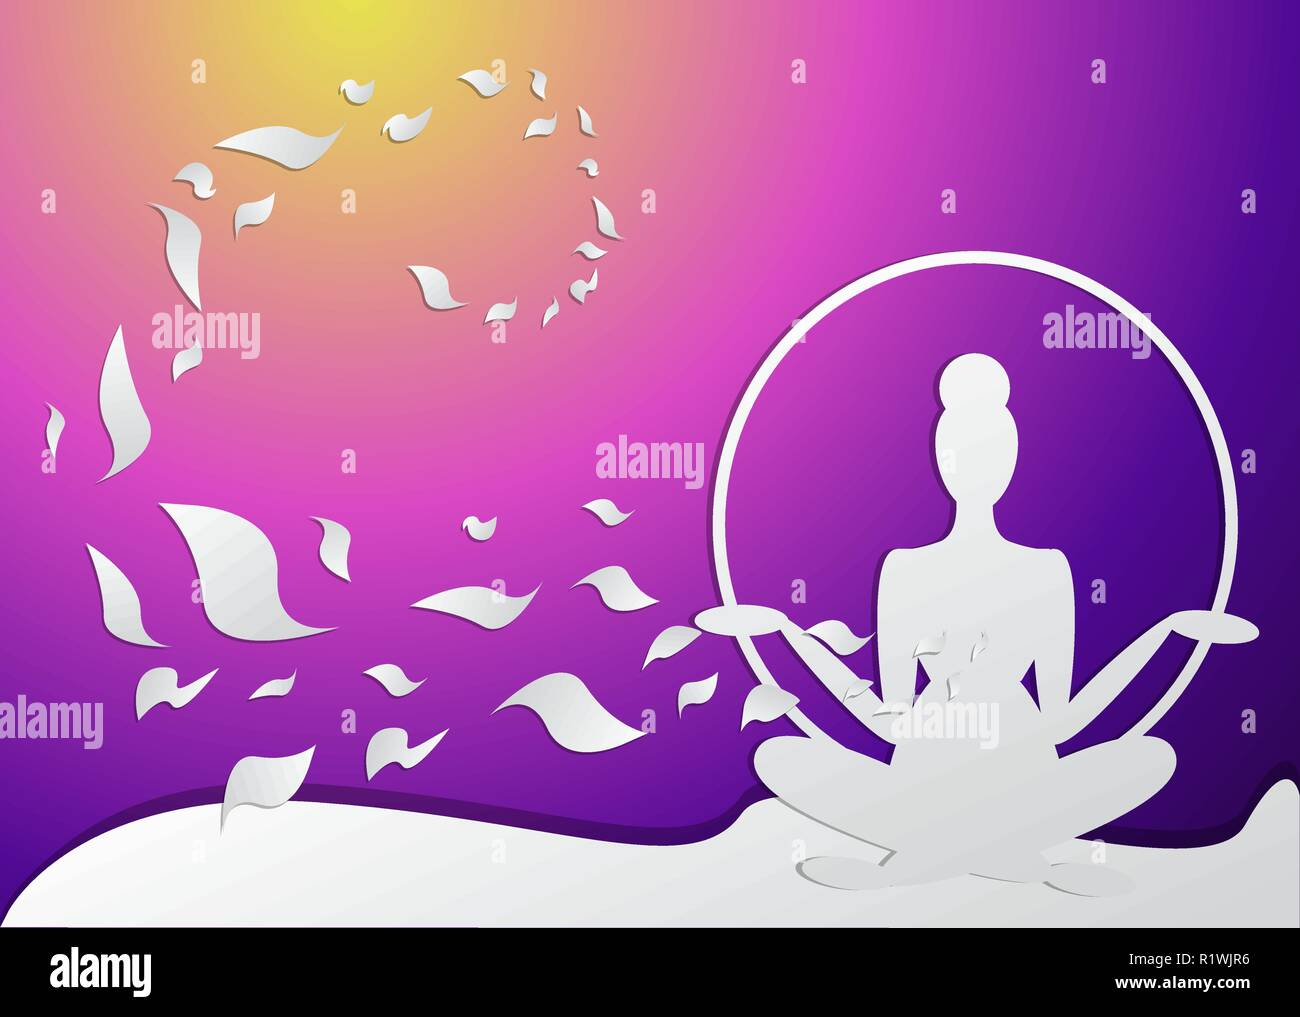 Girl Silhouette Meditate Yoga Pose Logo For Spa Featured Background Neon Colors And Paper Crafted Woman For Web And Print Vector Illustration Wi Stock Vector Image Art Alamy